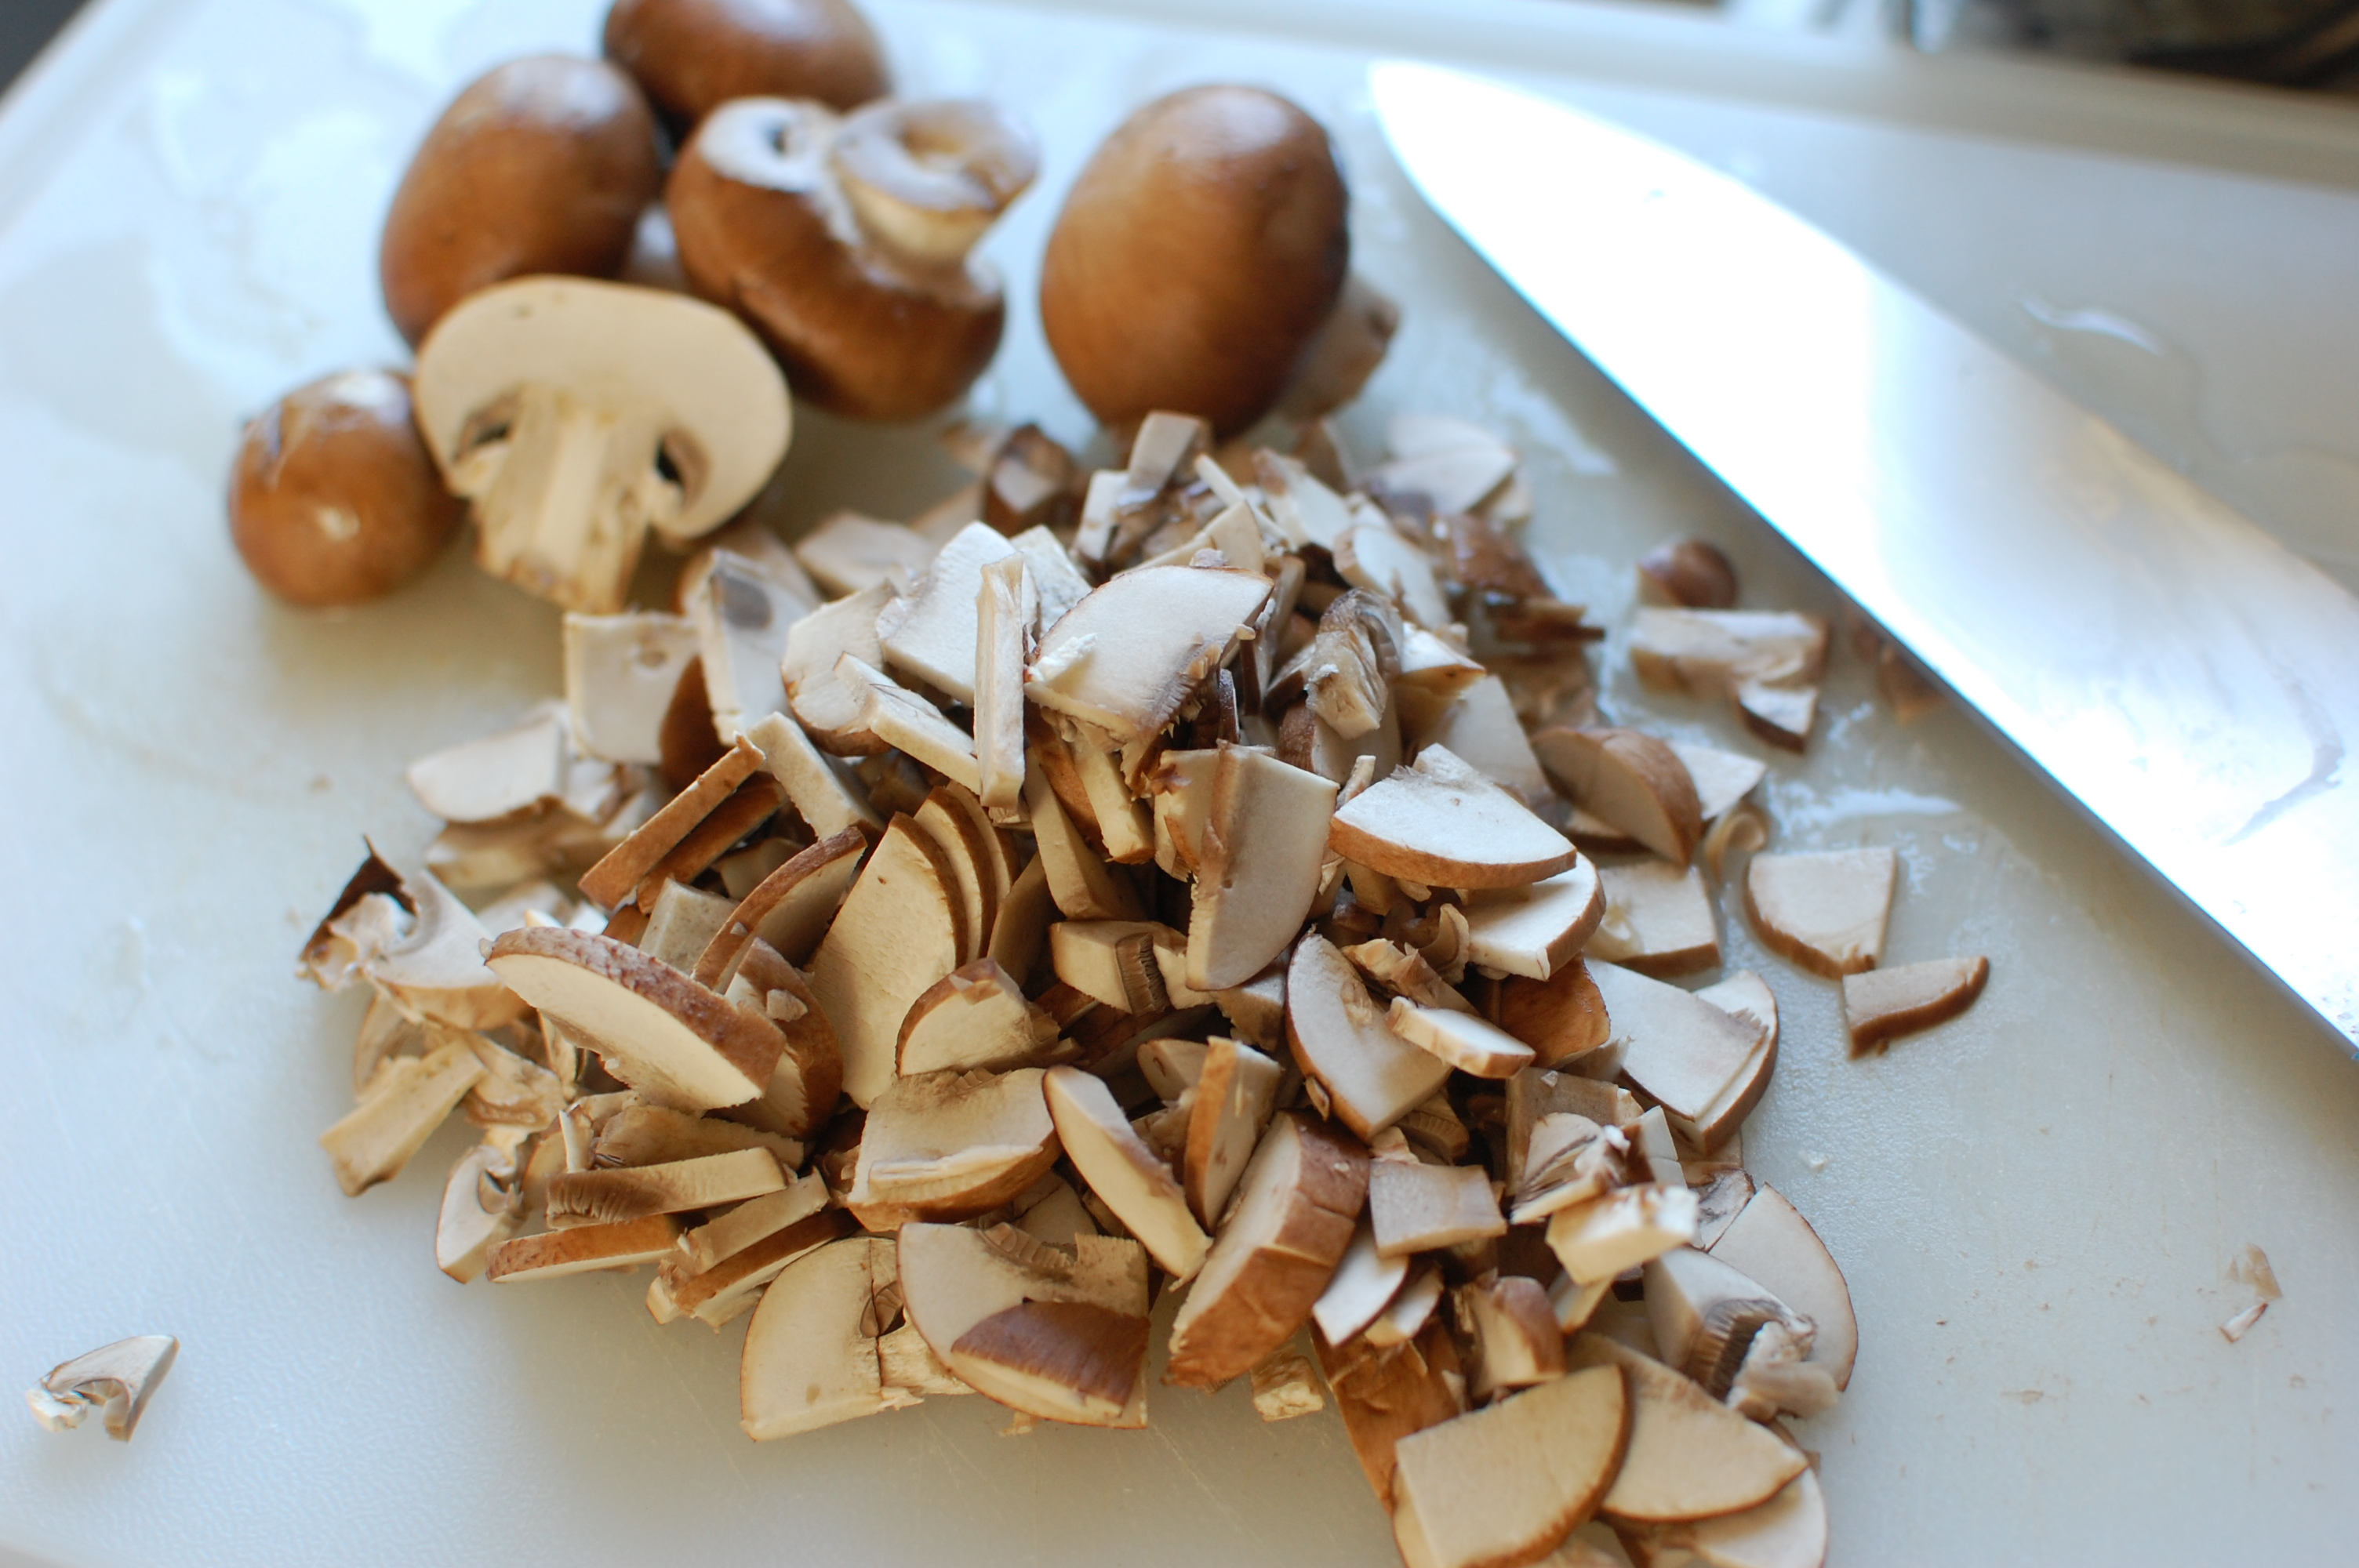 Heat the oil in a wok or frying pan, and saute the mushrooms until ...